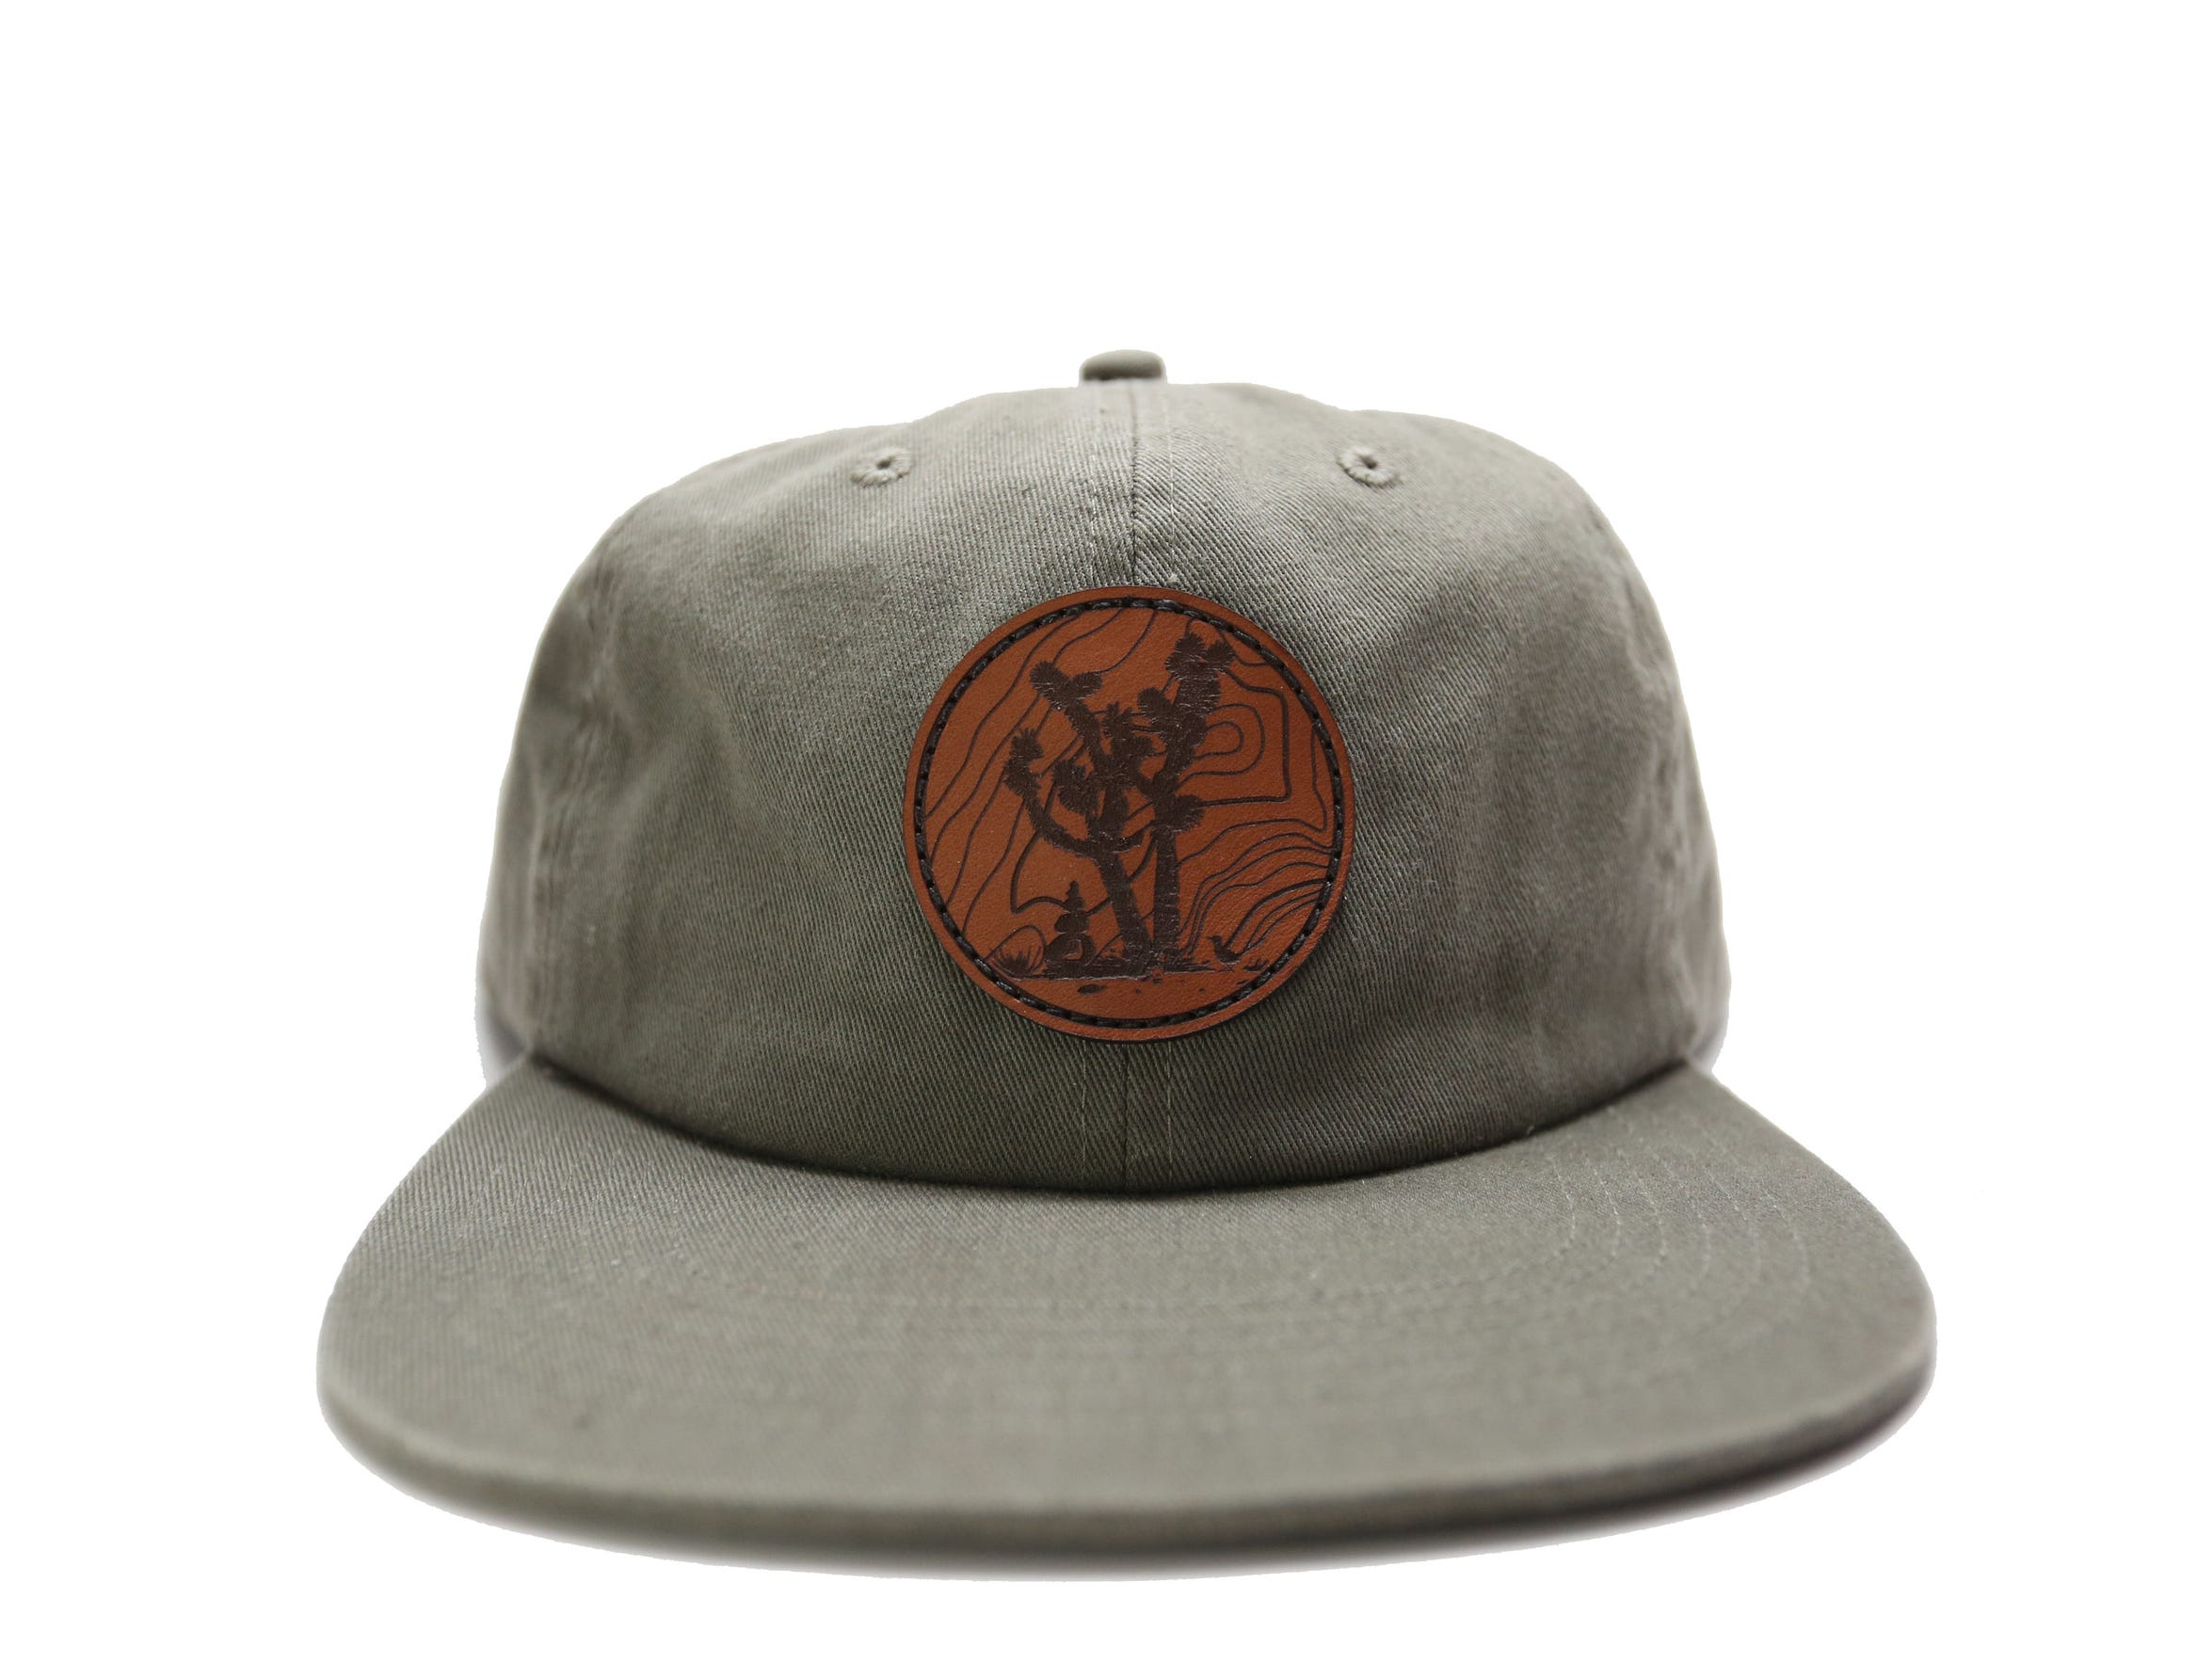 The Joshua Tree Olive 6 Panel Cap is made of washed